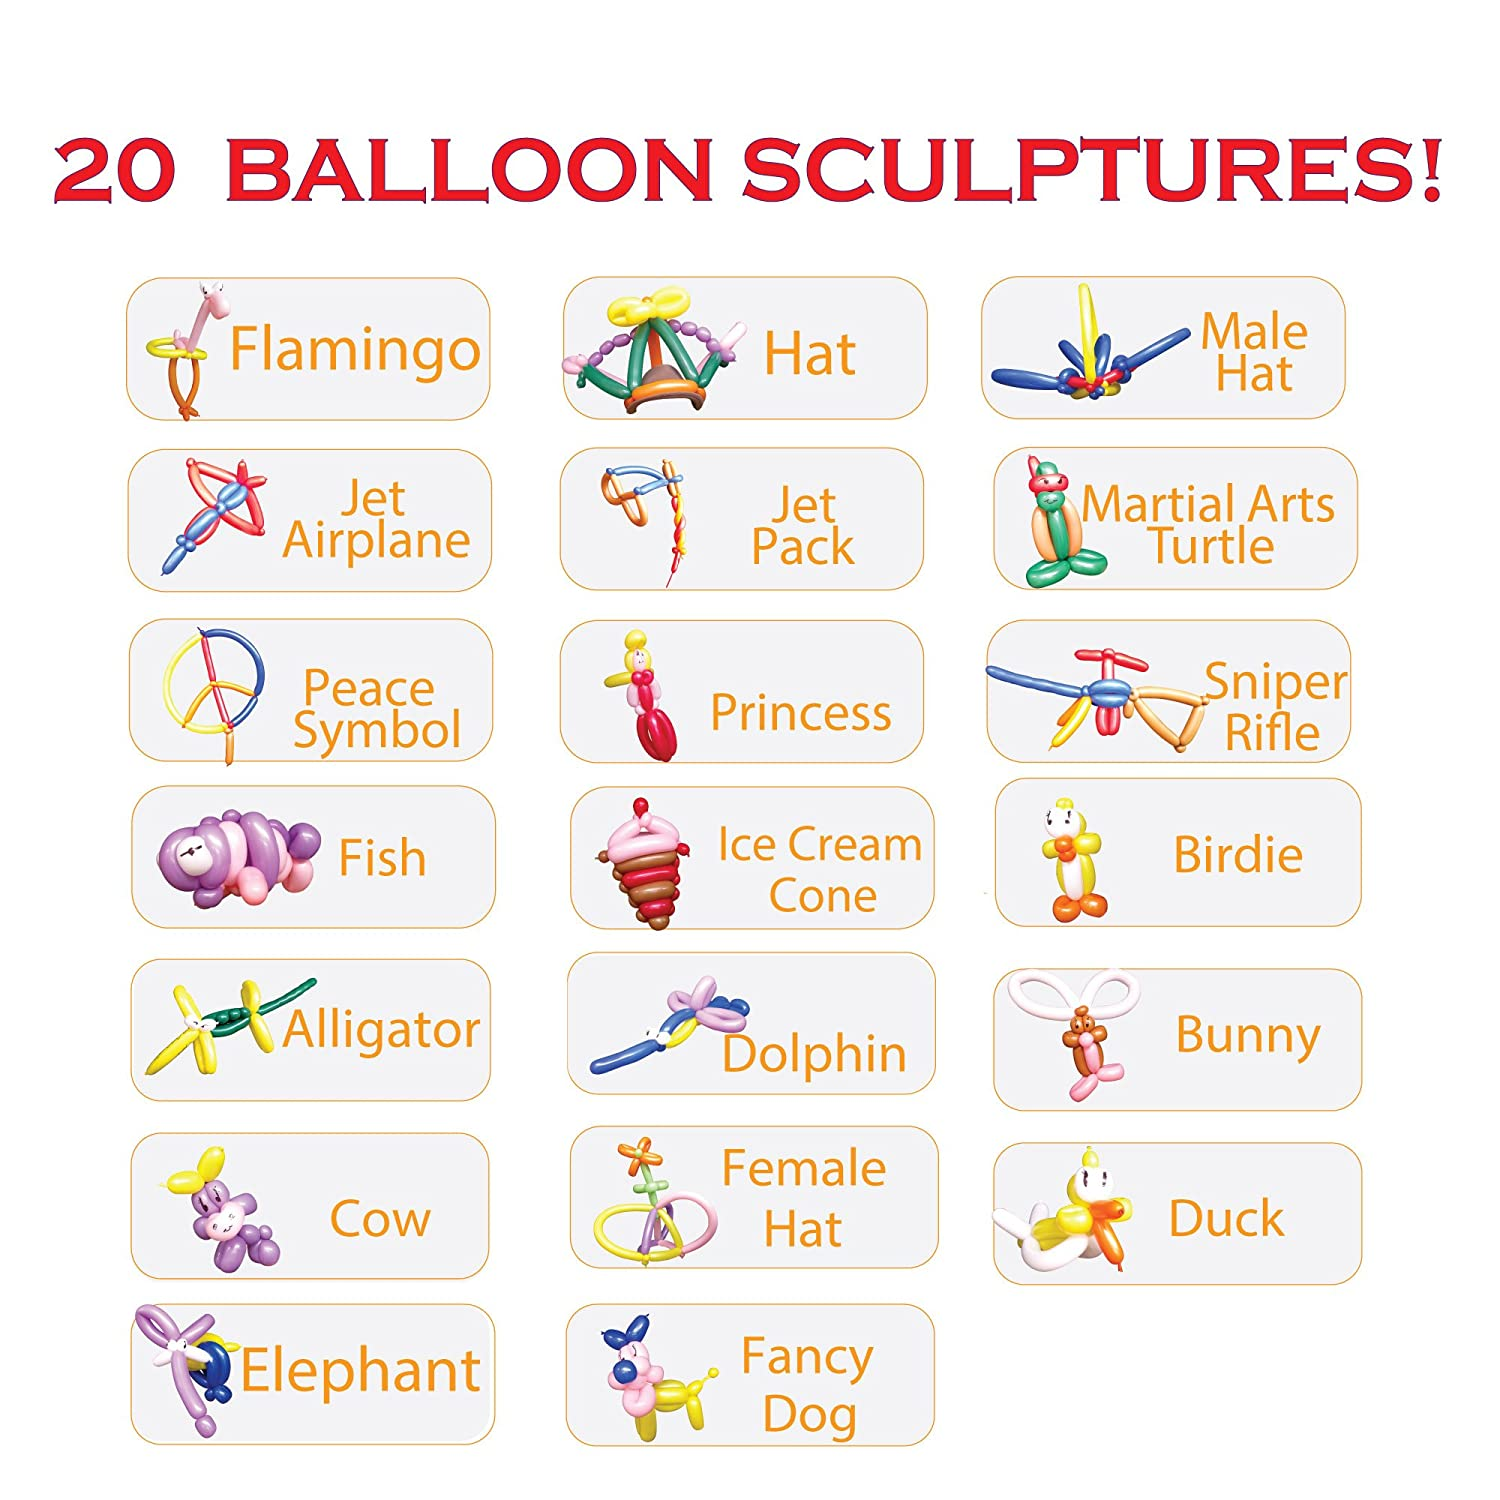 photograph relating to Balloon Modelling Instructions Printable called : Understand Climb Balloon Animal Package, Detailed